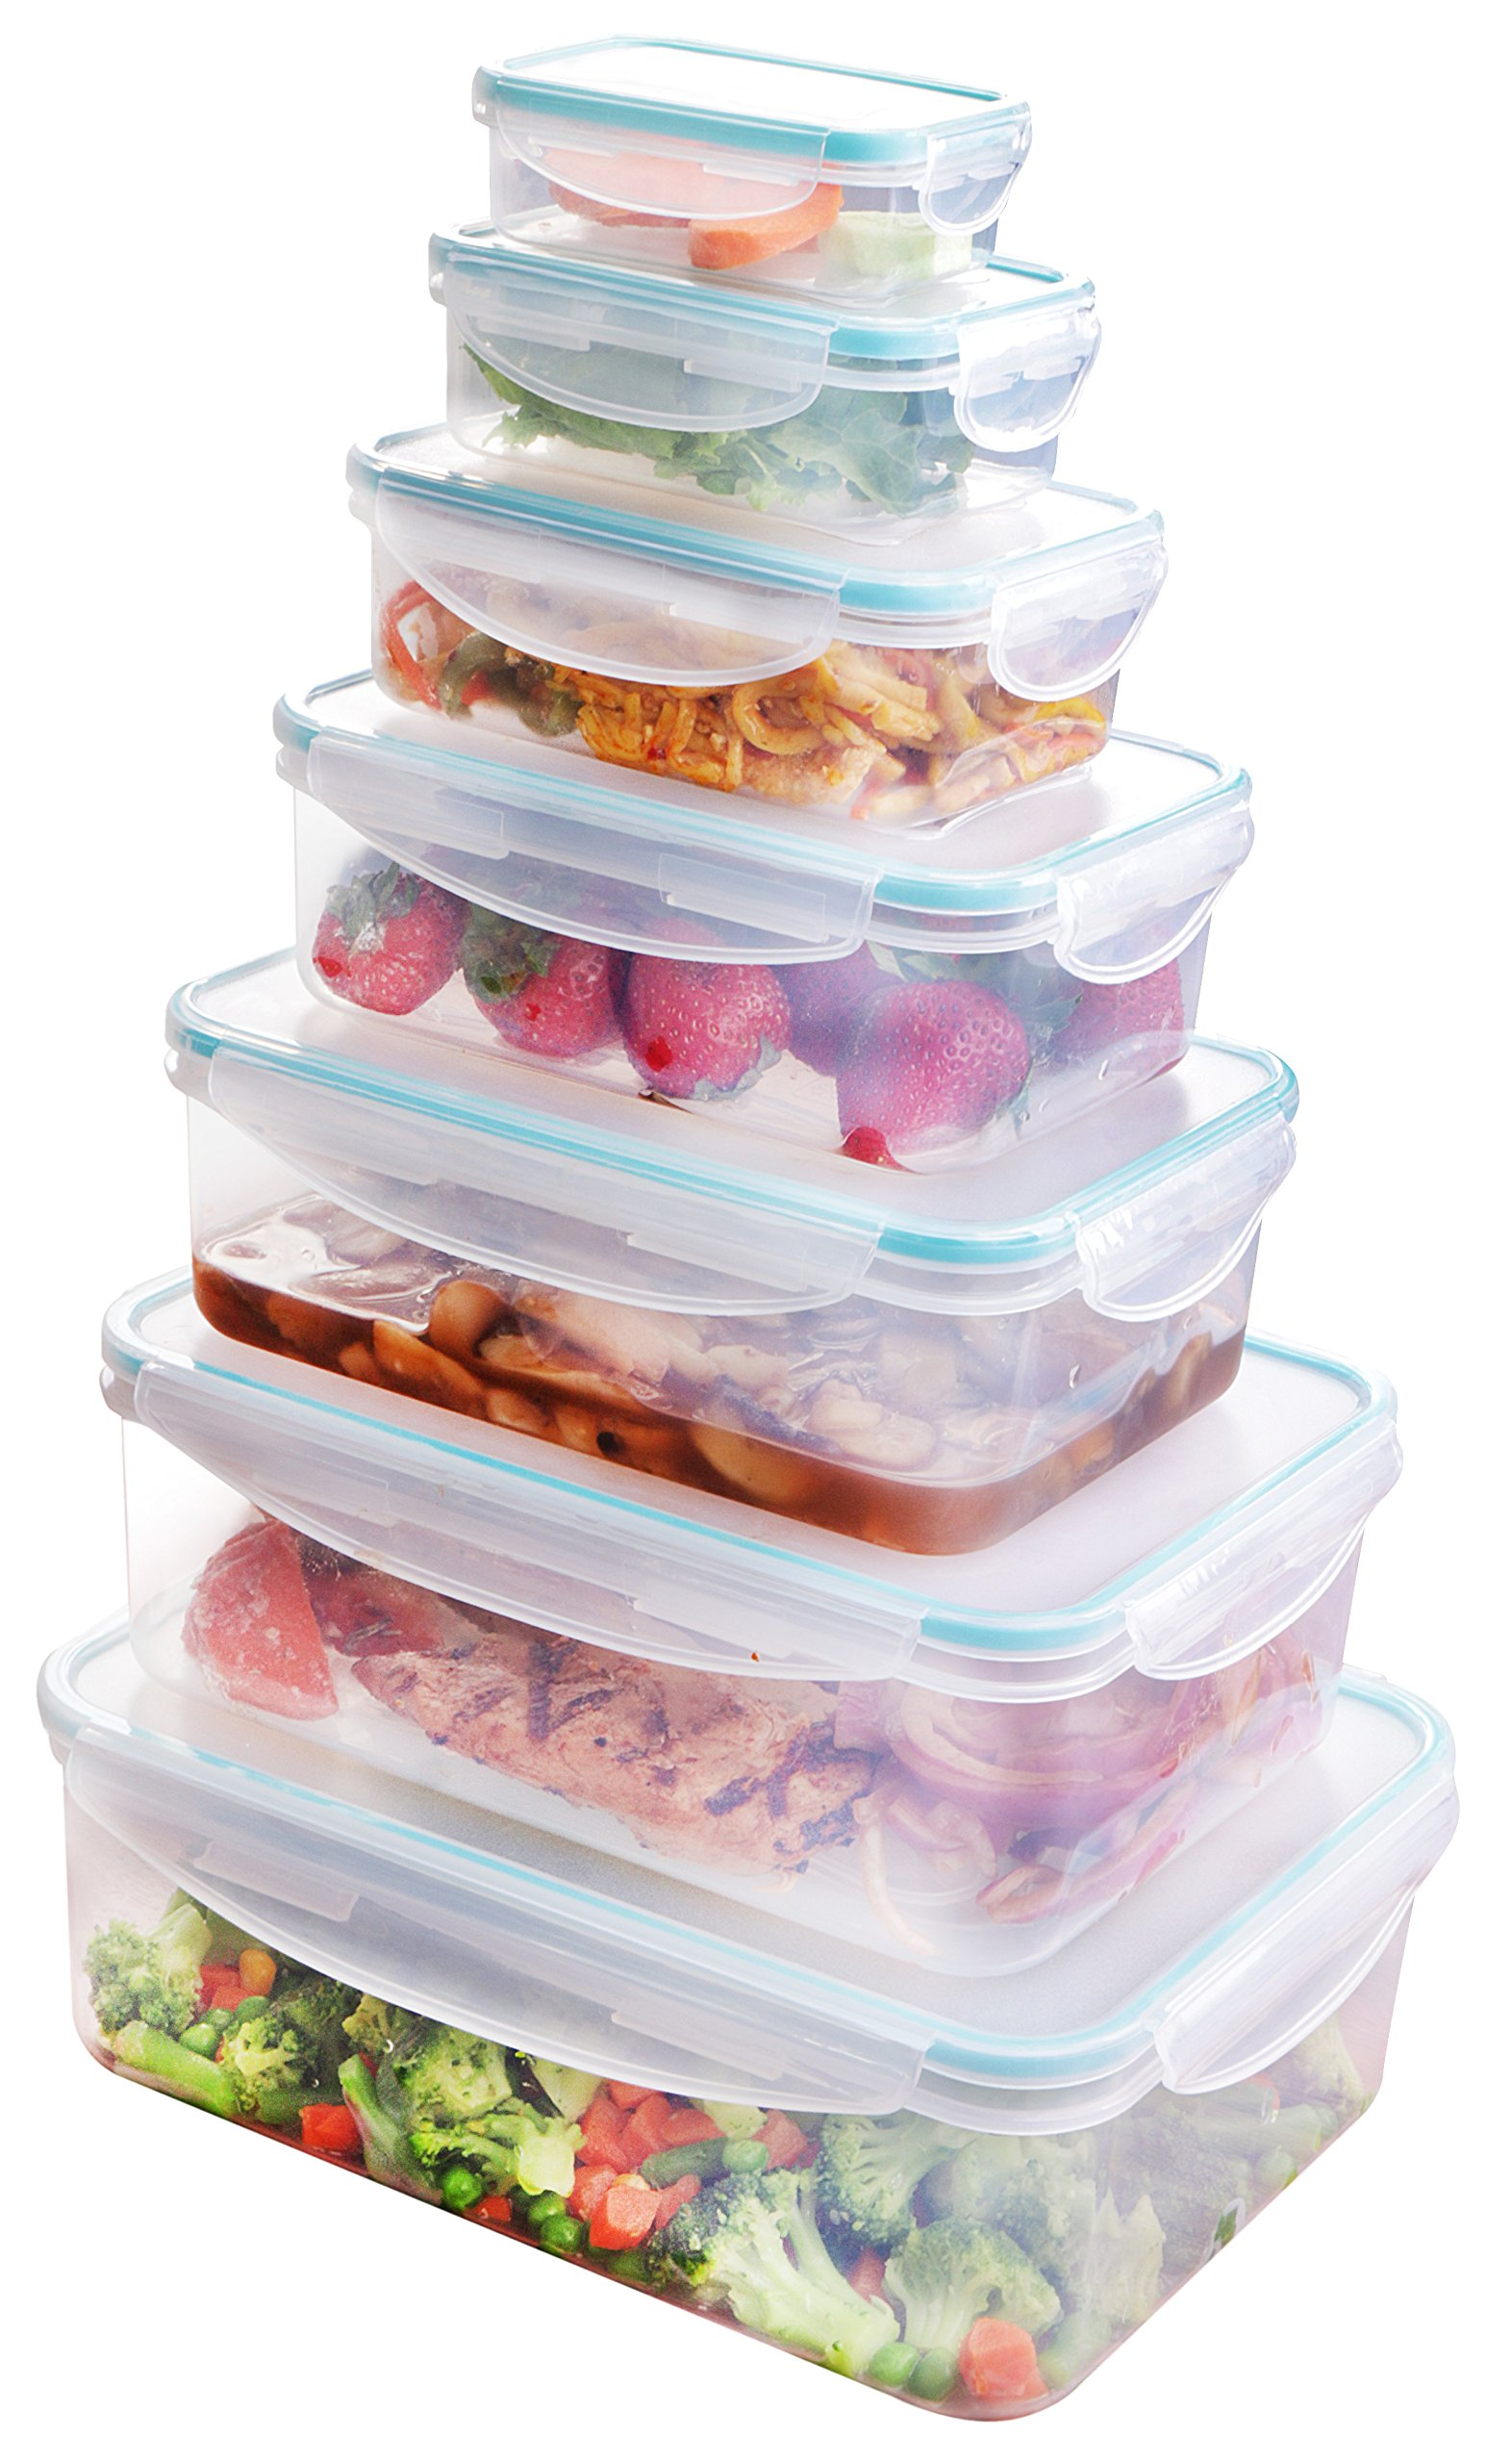 Utopia Kitchen Plastic Food Storage Container Set (14 Pieces - 7 Containers & 7 Lids) - Air-Tight & BPA-Free - Reusable For Multipurpose Use